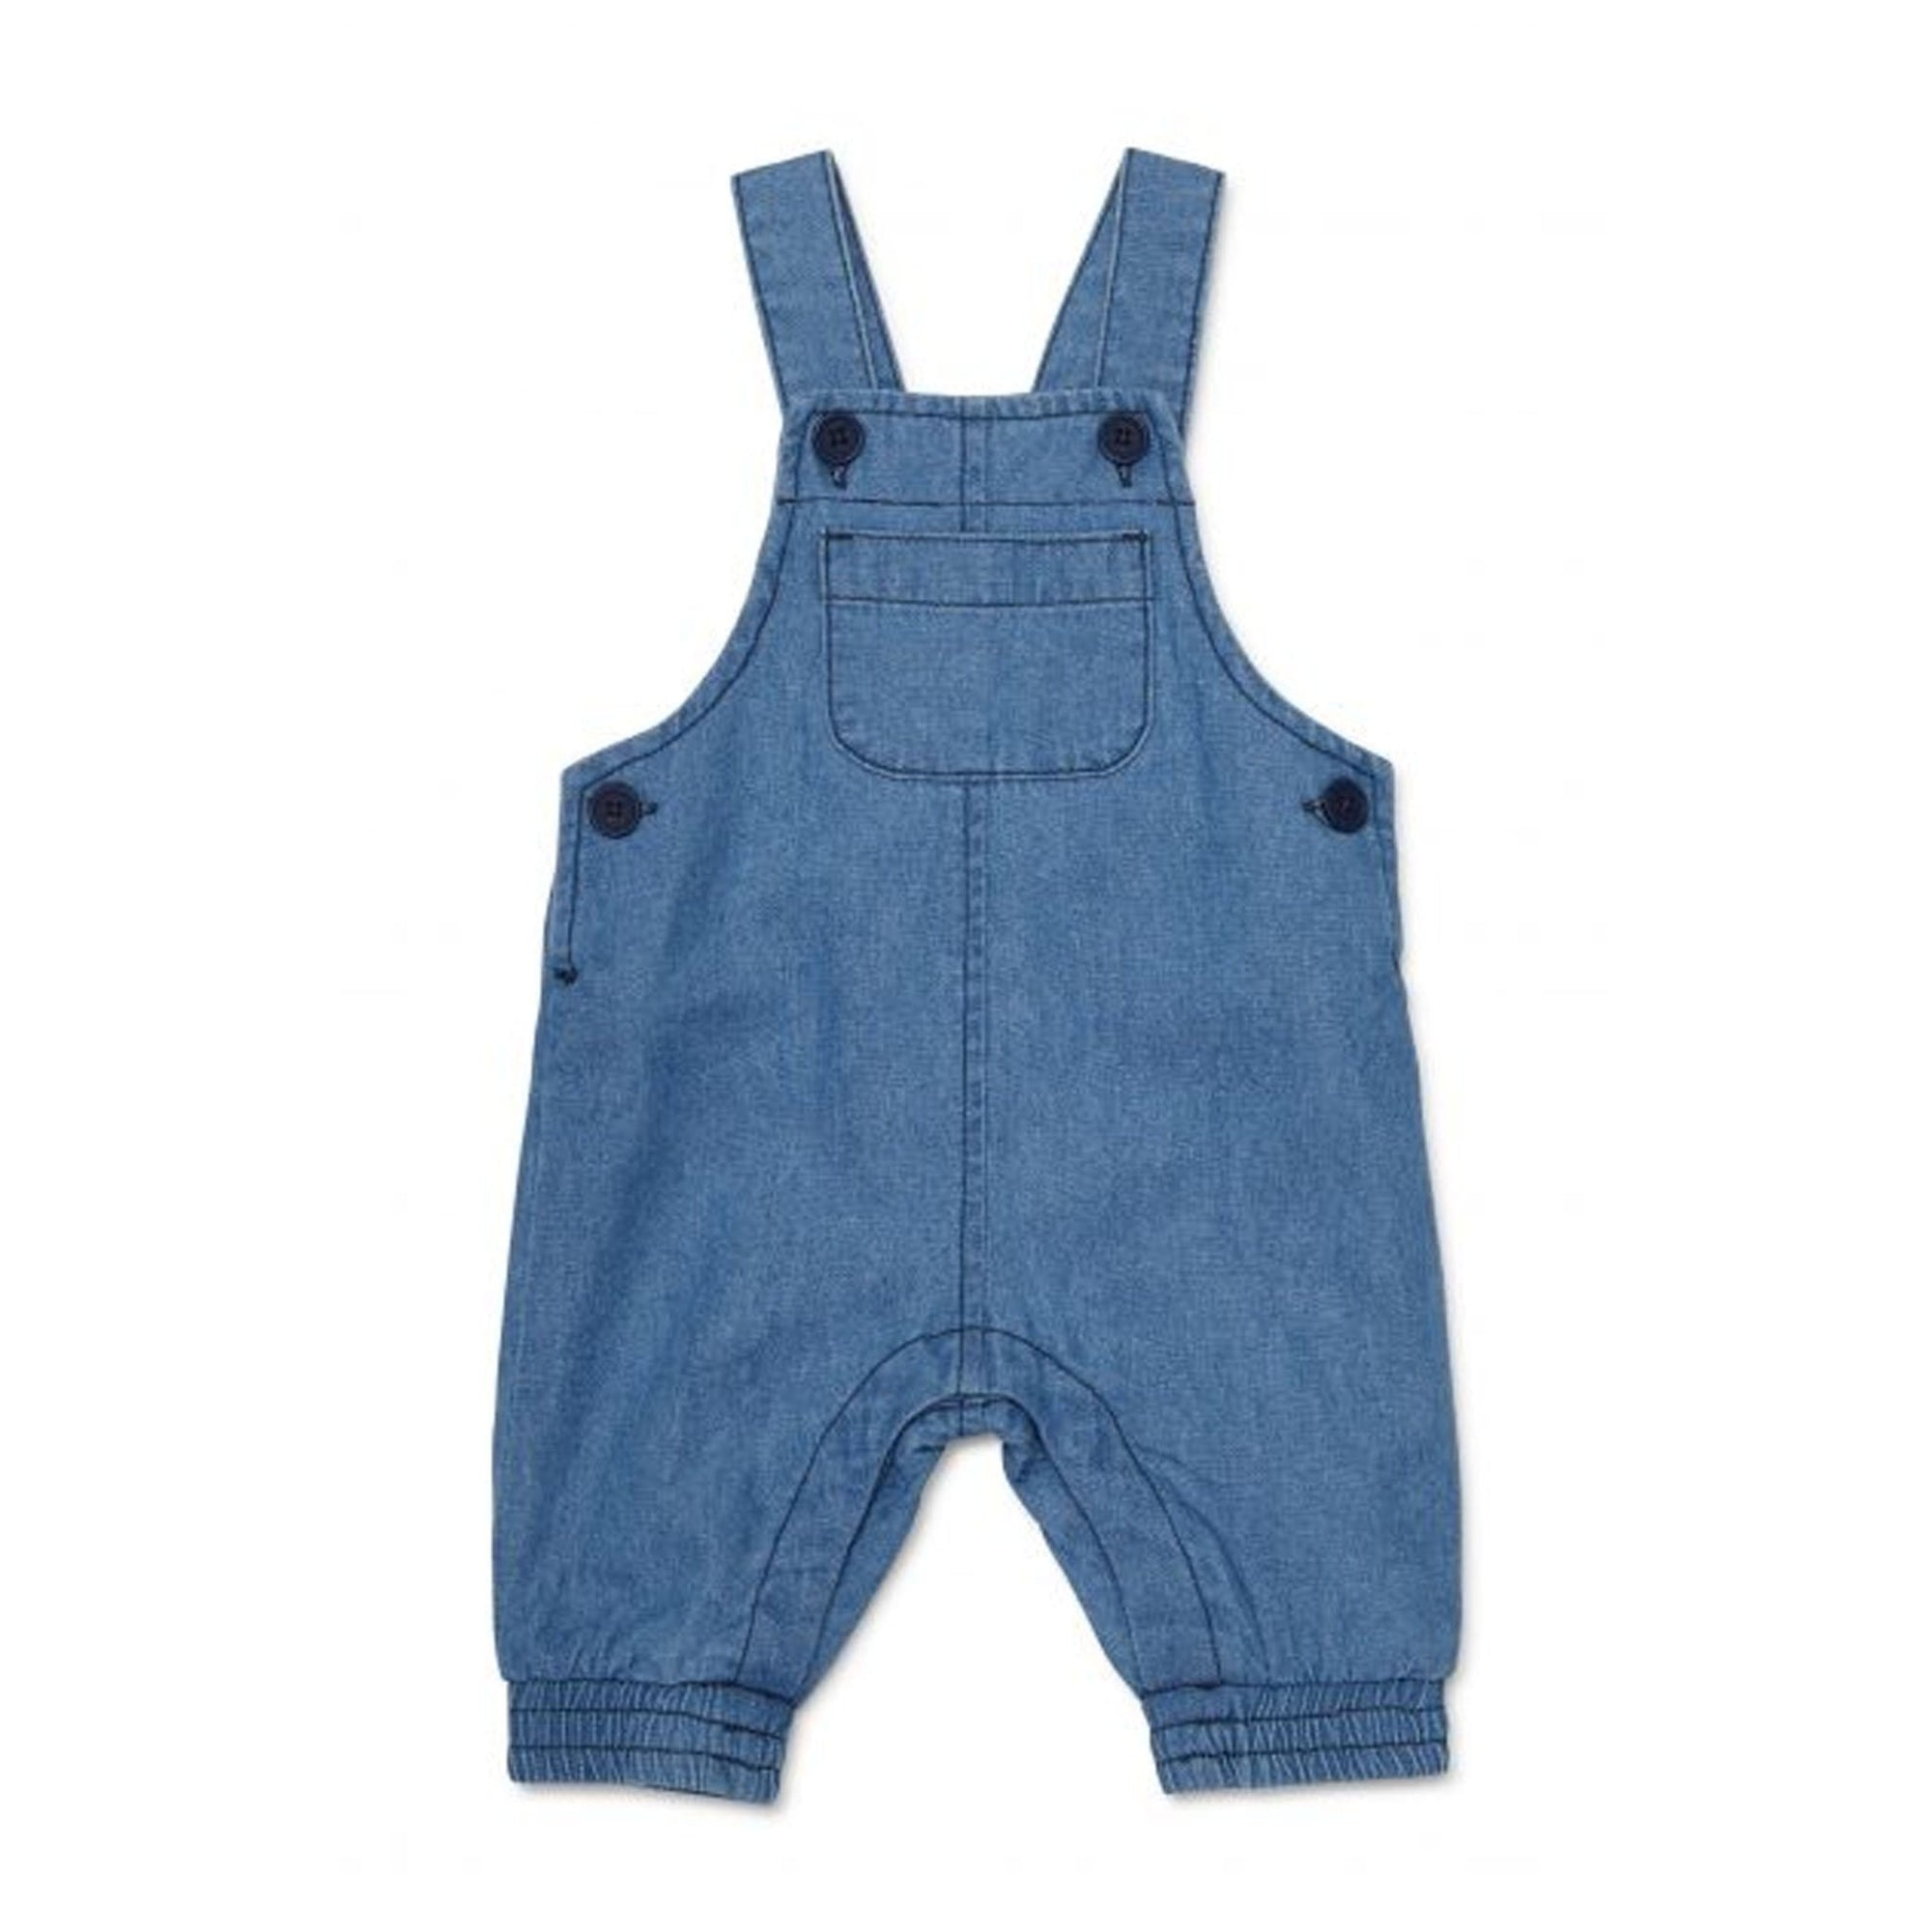 Marquise Denim Chambray Overall